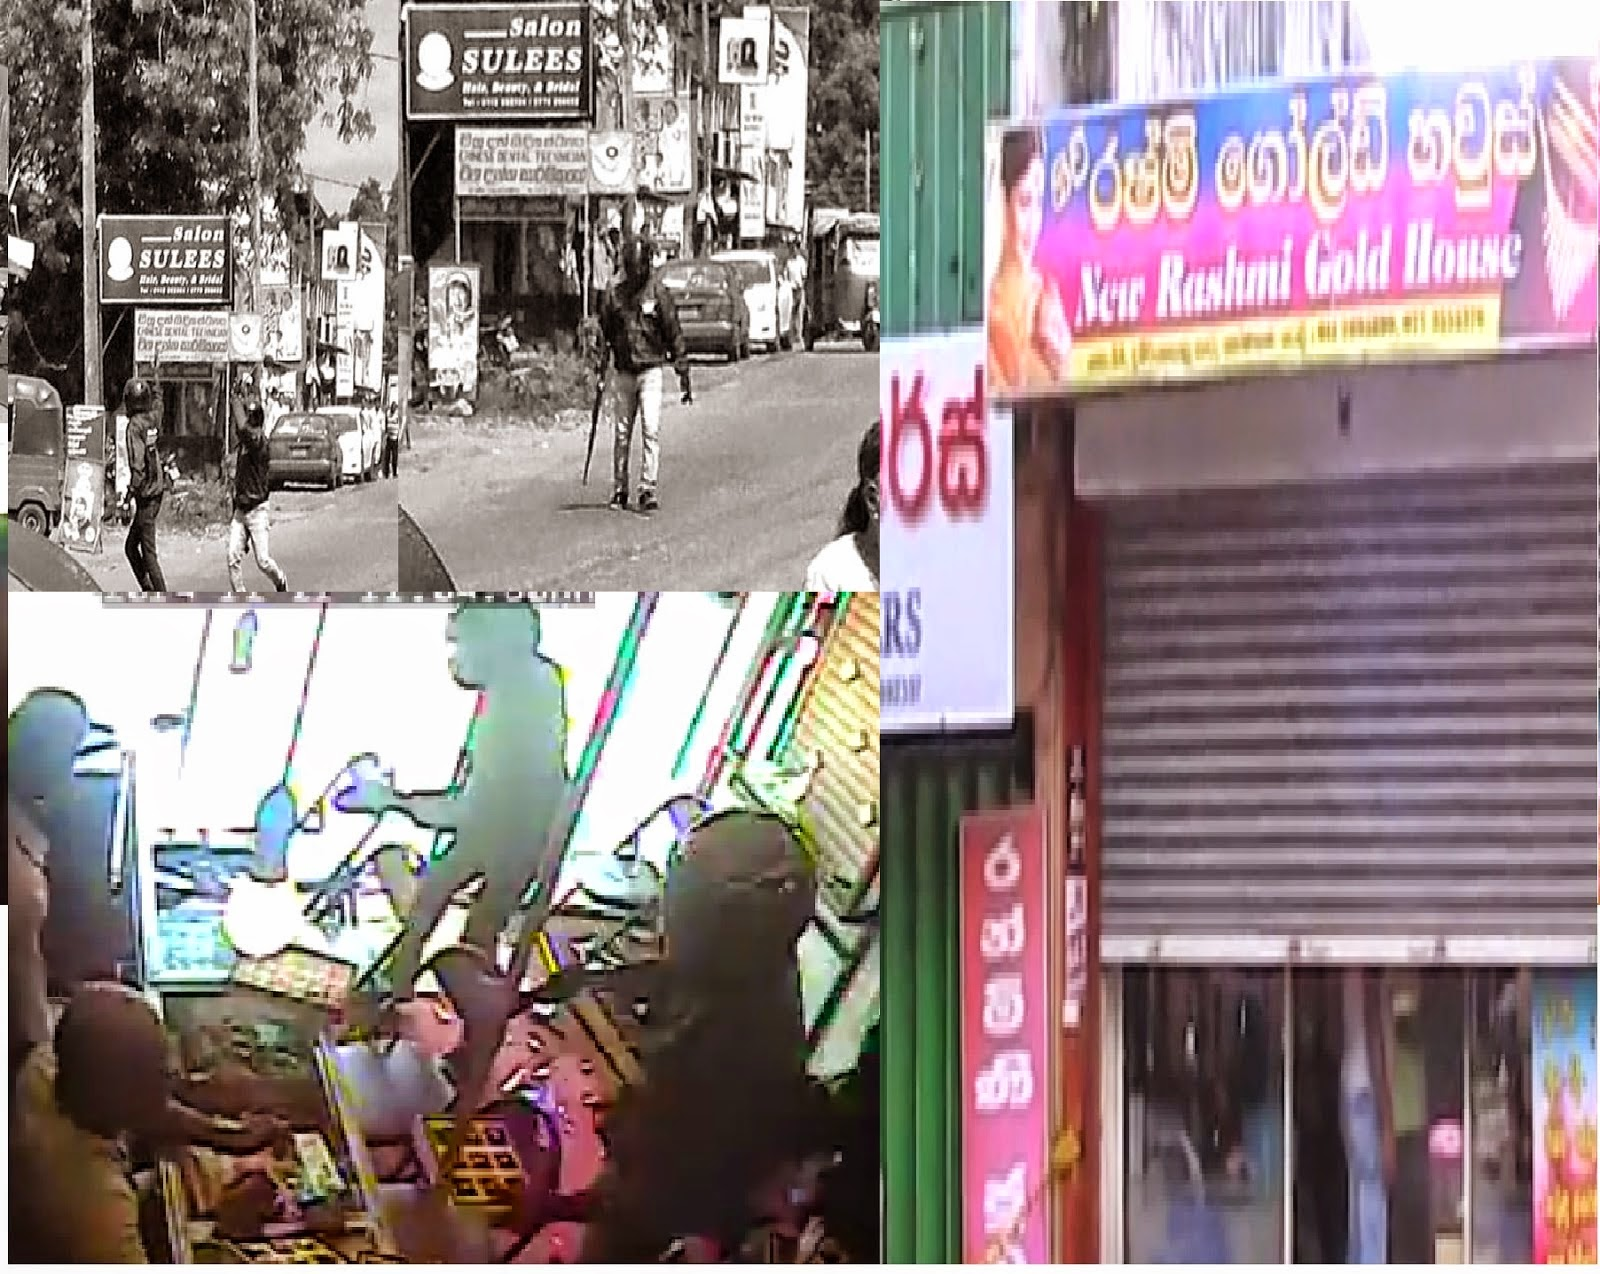 Gossip-Lanka-Sinhala-News-Armed-masked-men-robbery-at-jewelry-shop-in-Homagama-www.gossipsinhalanews.com